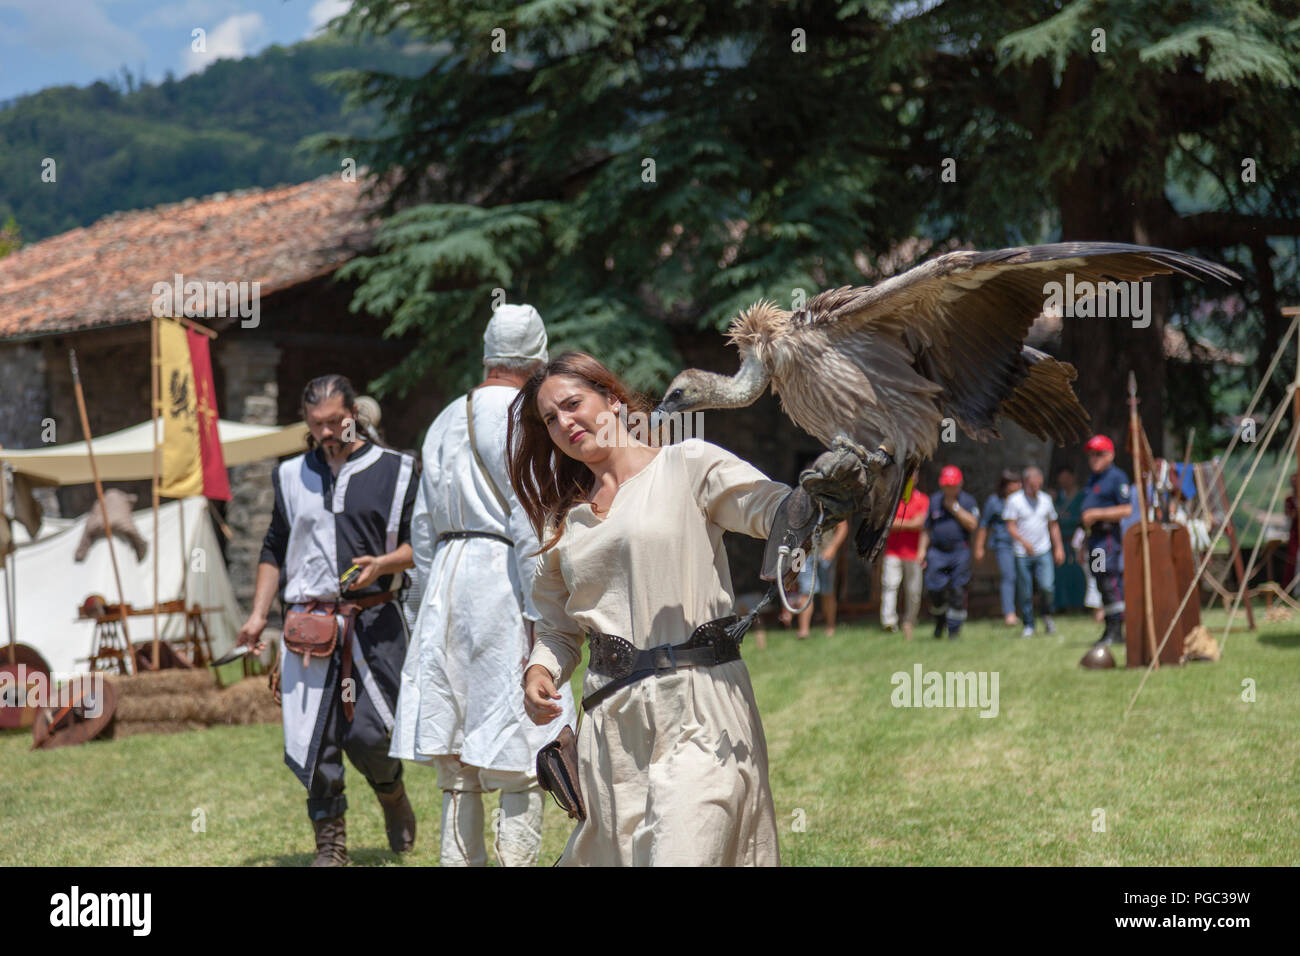 A falconer assistant bringing a bird of prey at the time of a medieval falconry show, at Barga (Tuscany - Italy). Assistante de fauconnier, à Barga. - Stock Image